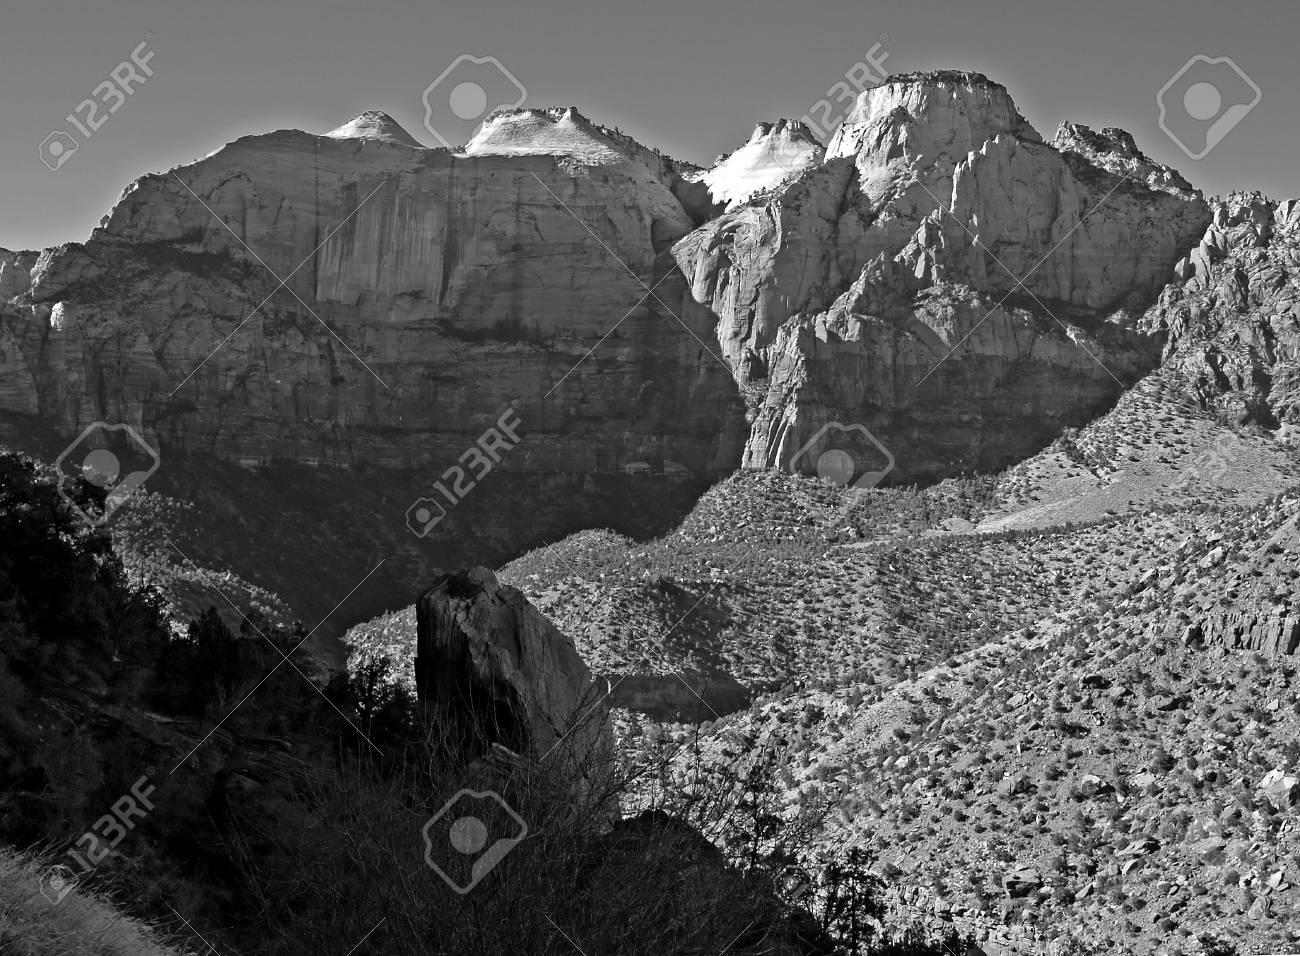 The zion national park in utah usa in black and white stock photo 1483269